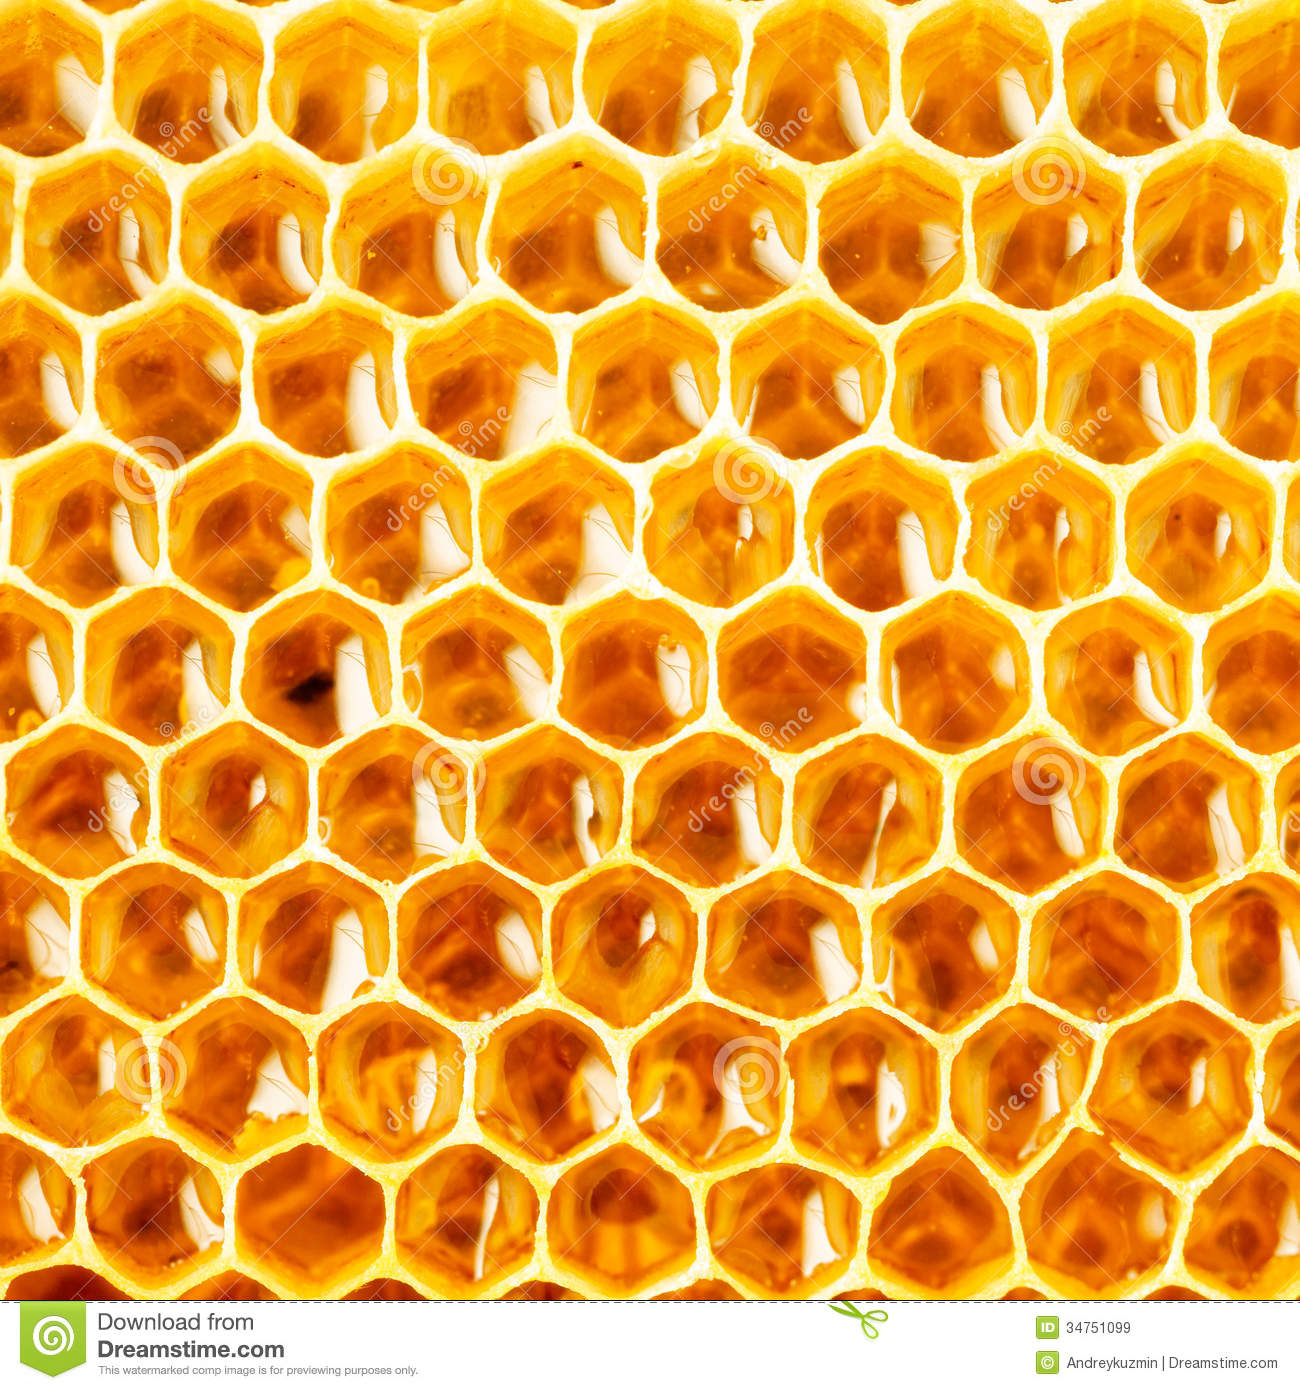 honey in honeycomb closeup royalty free stock images honeycomb clipart frame honeycomb clip art png